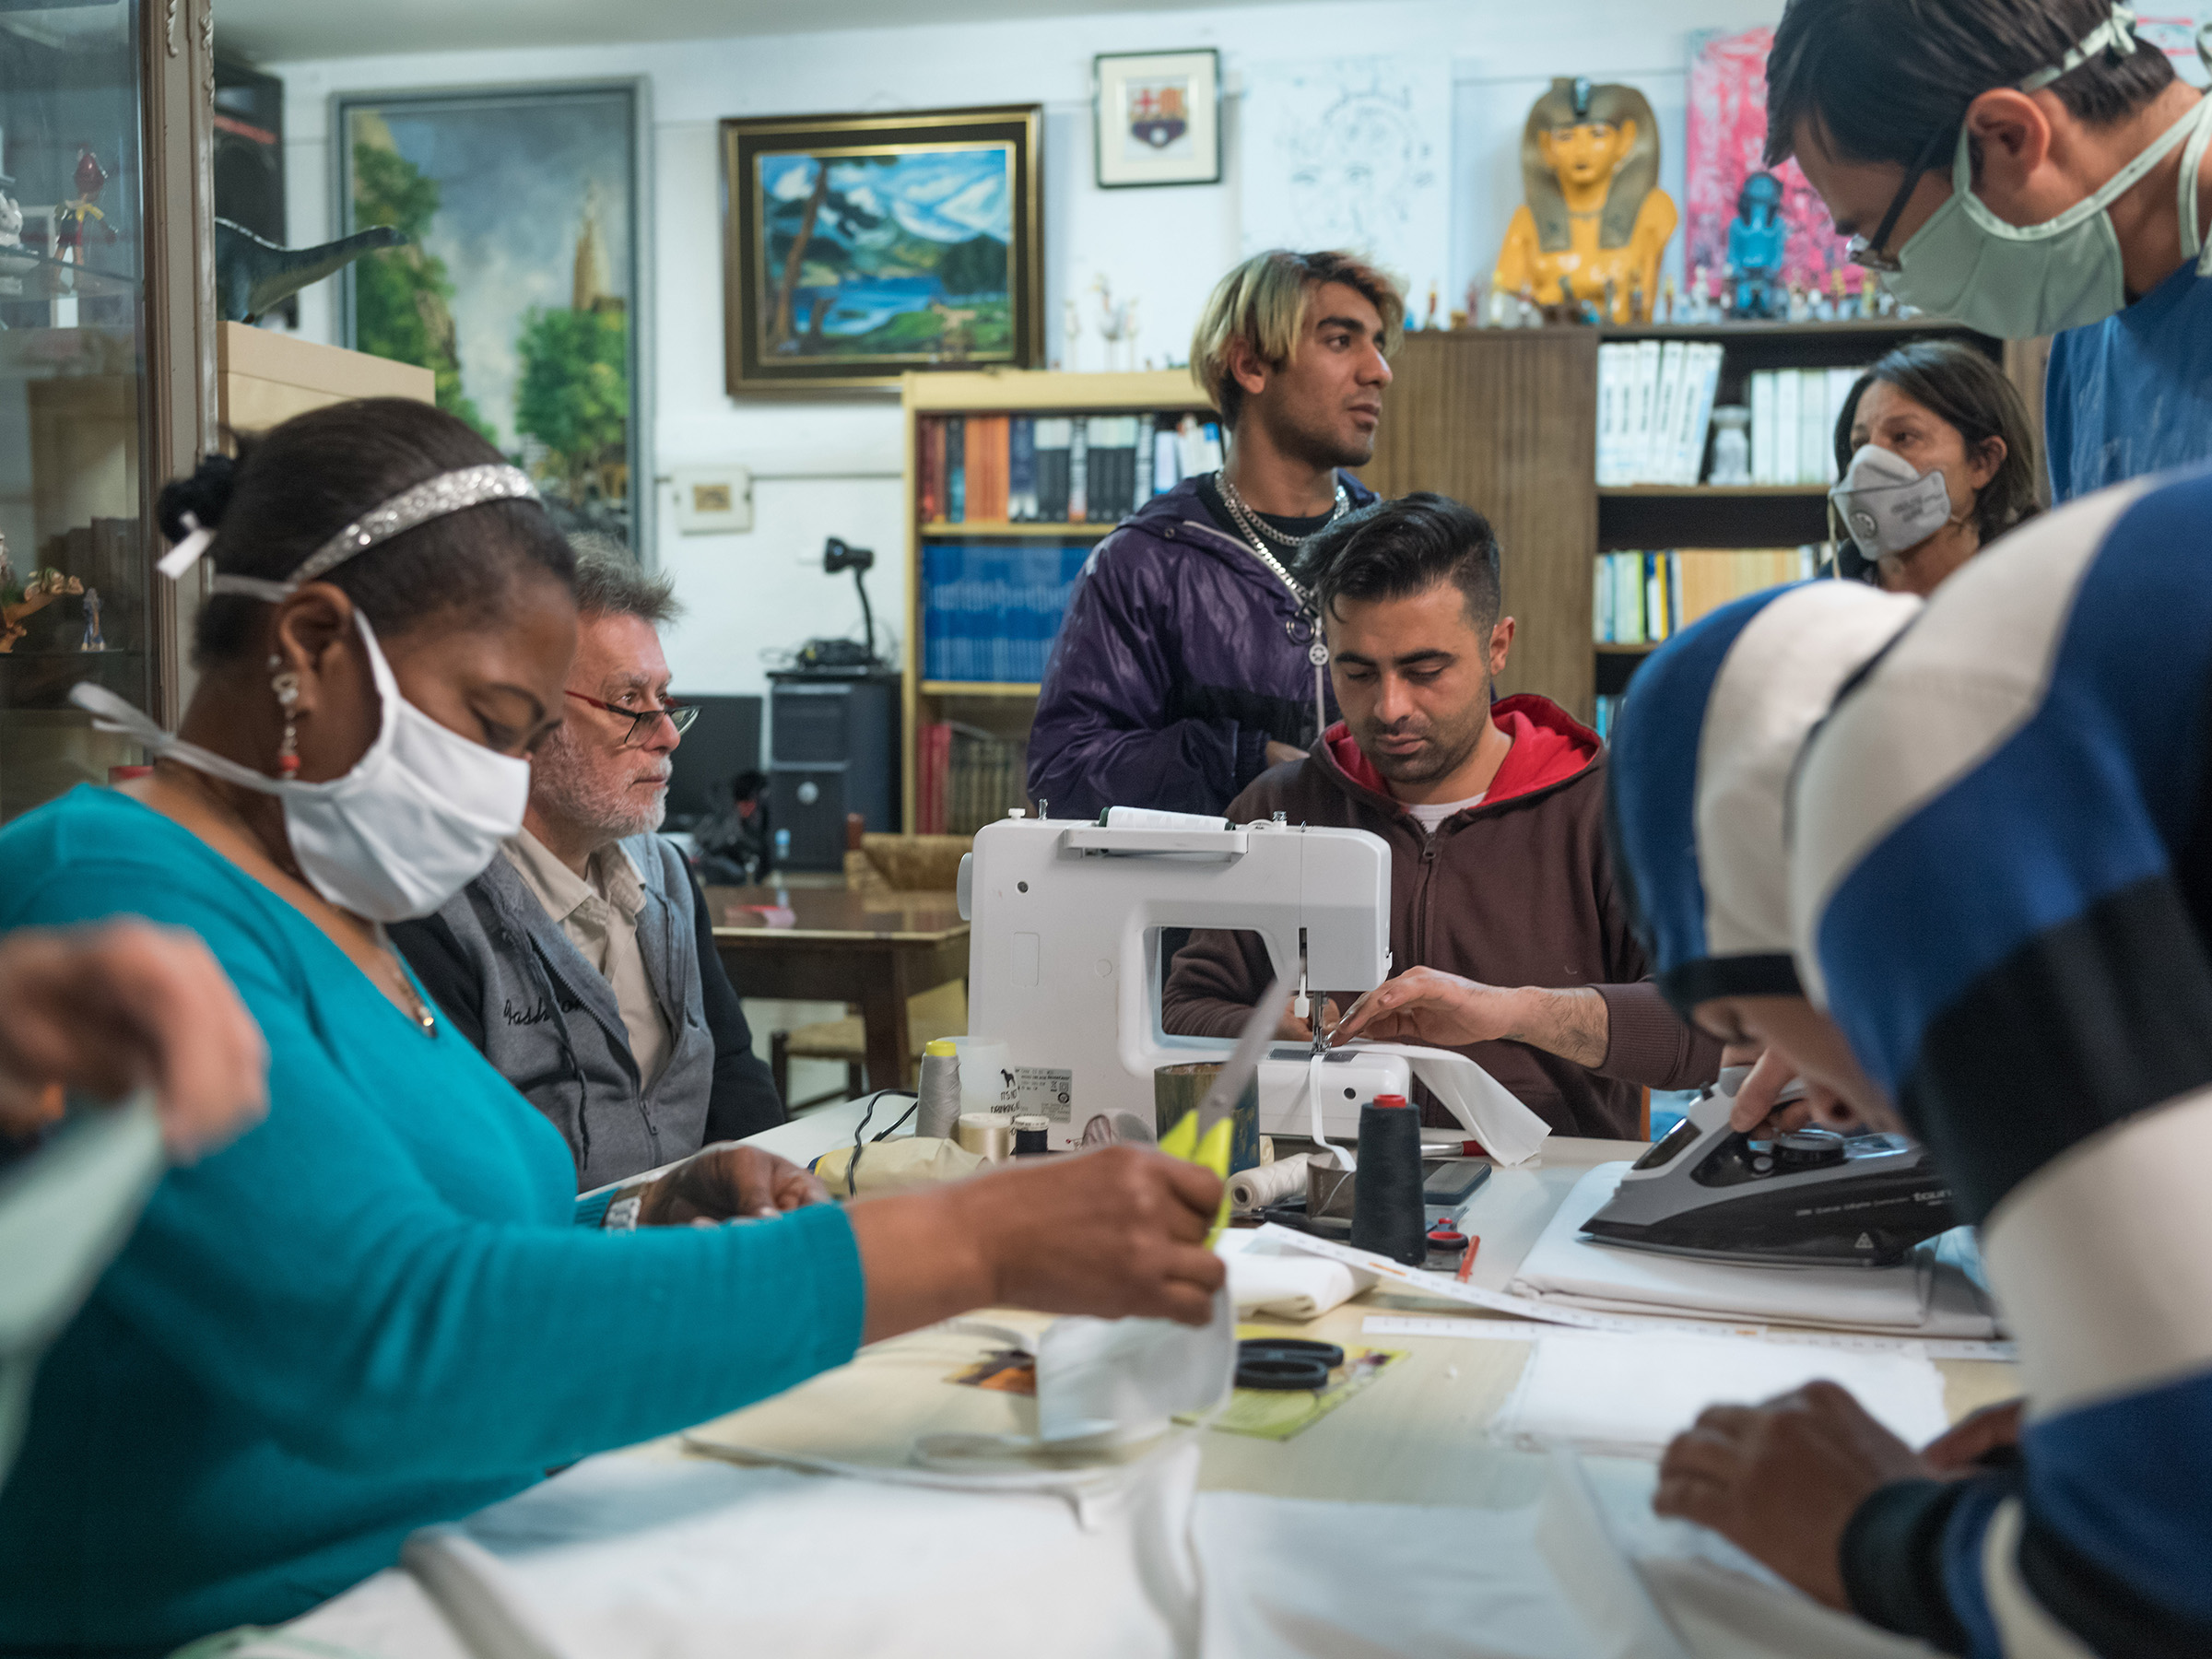 Residents of Casa Cádiz, a shelter for homeless people and refugees in Barcelona, produce face masks for use in hospitals and nursing homes